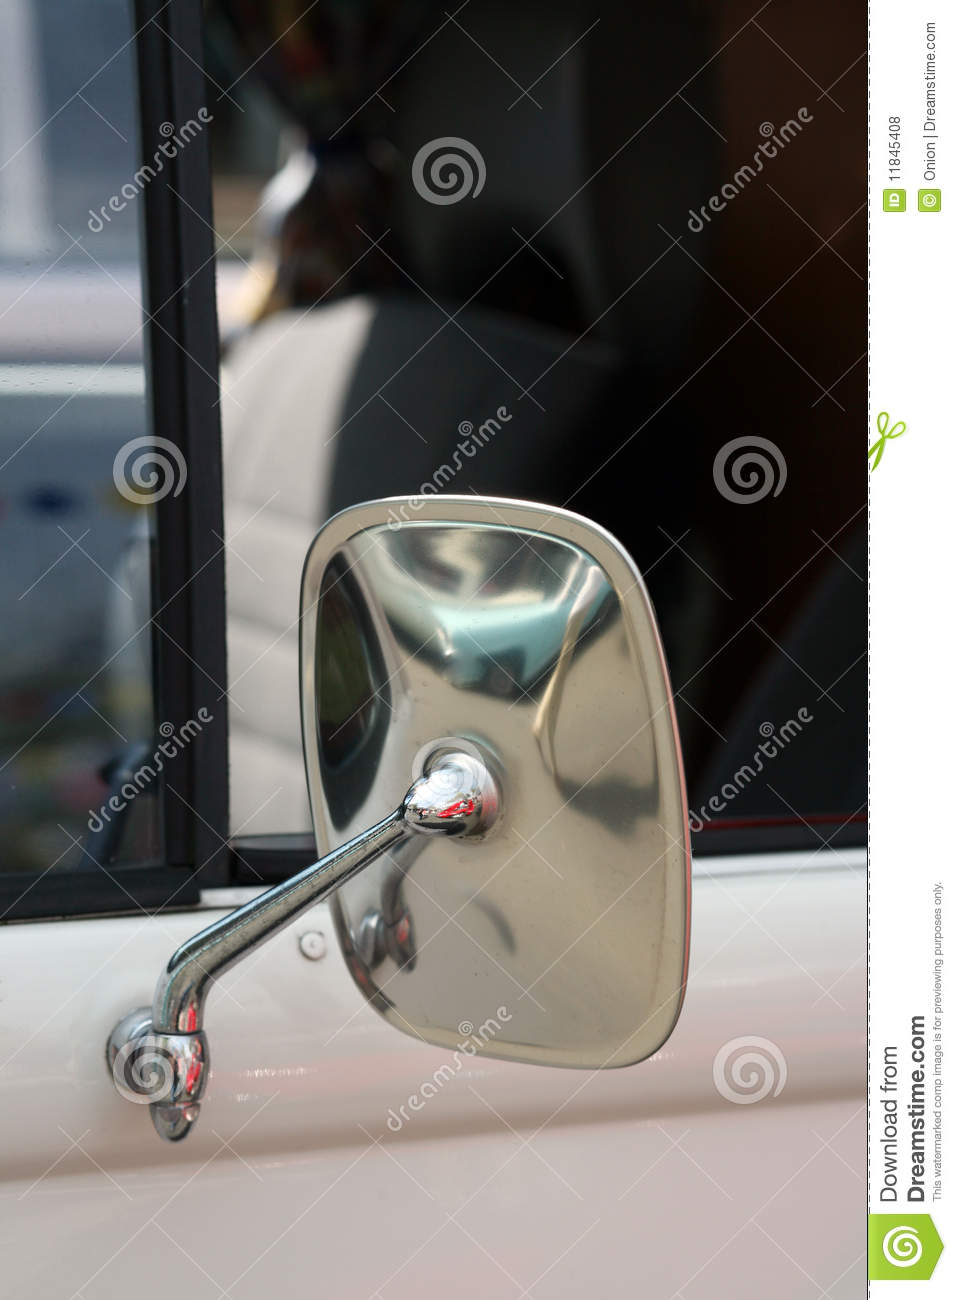 classic car rear view mirror stock photo image 11845408. Black Bedroom Furniture Sets. Home Design Ideas